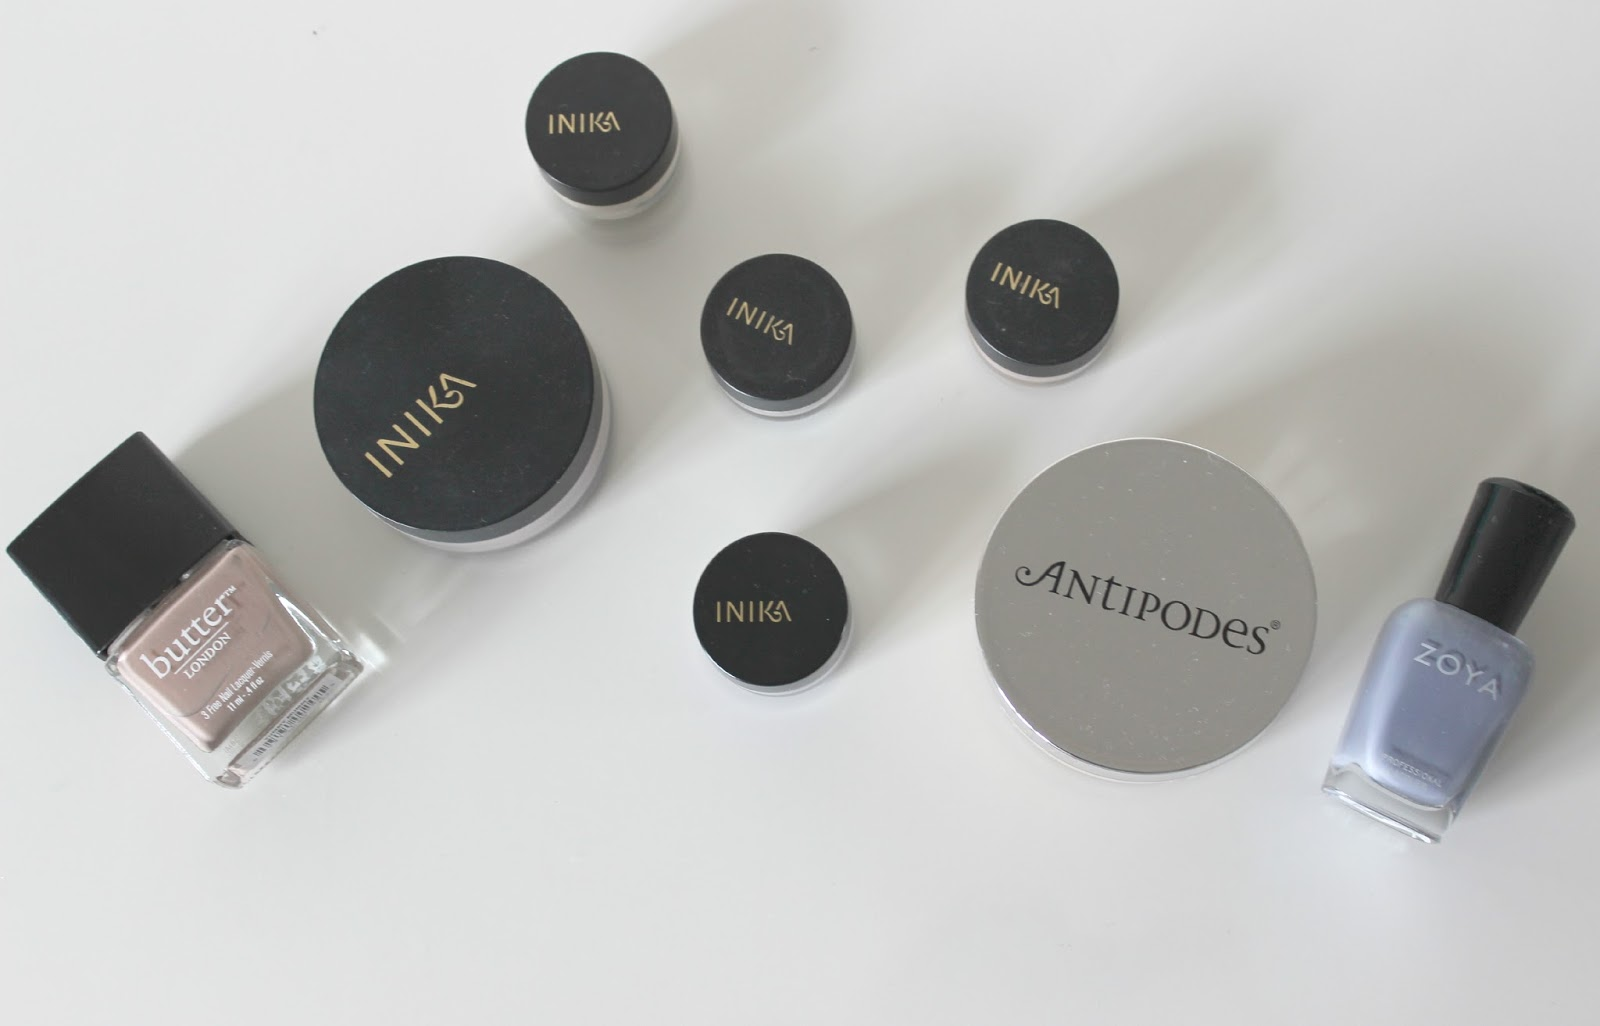 A picture of Inika, Antipodes, Butter London and Zoya organic makeup products